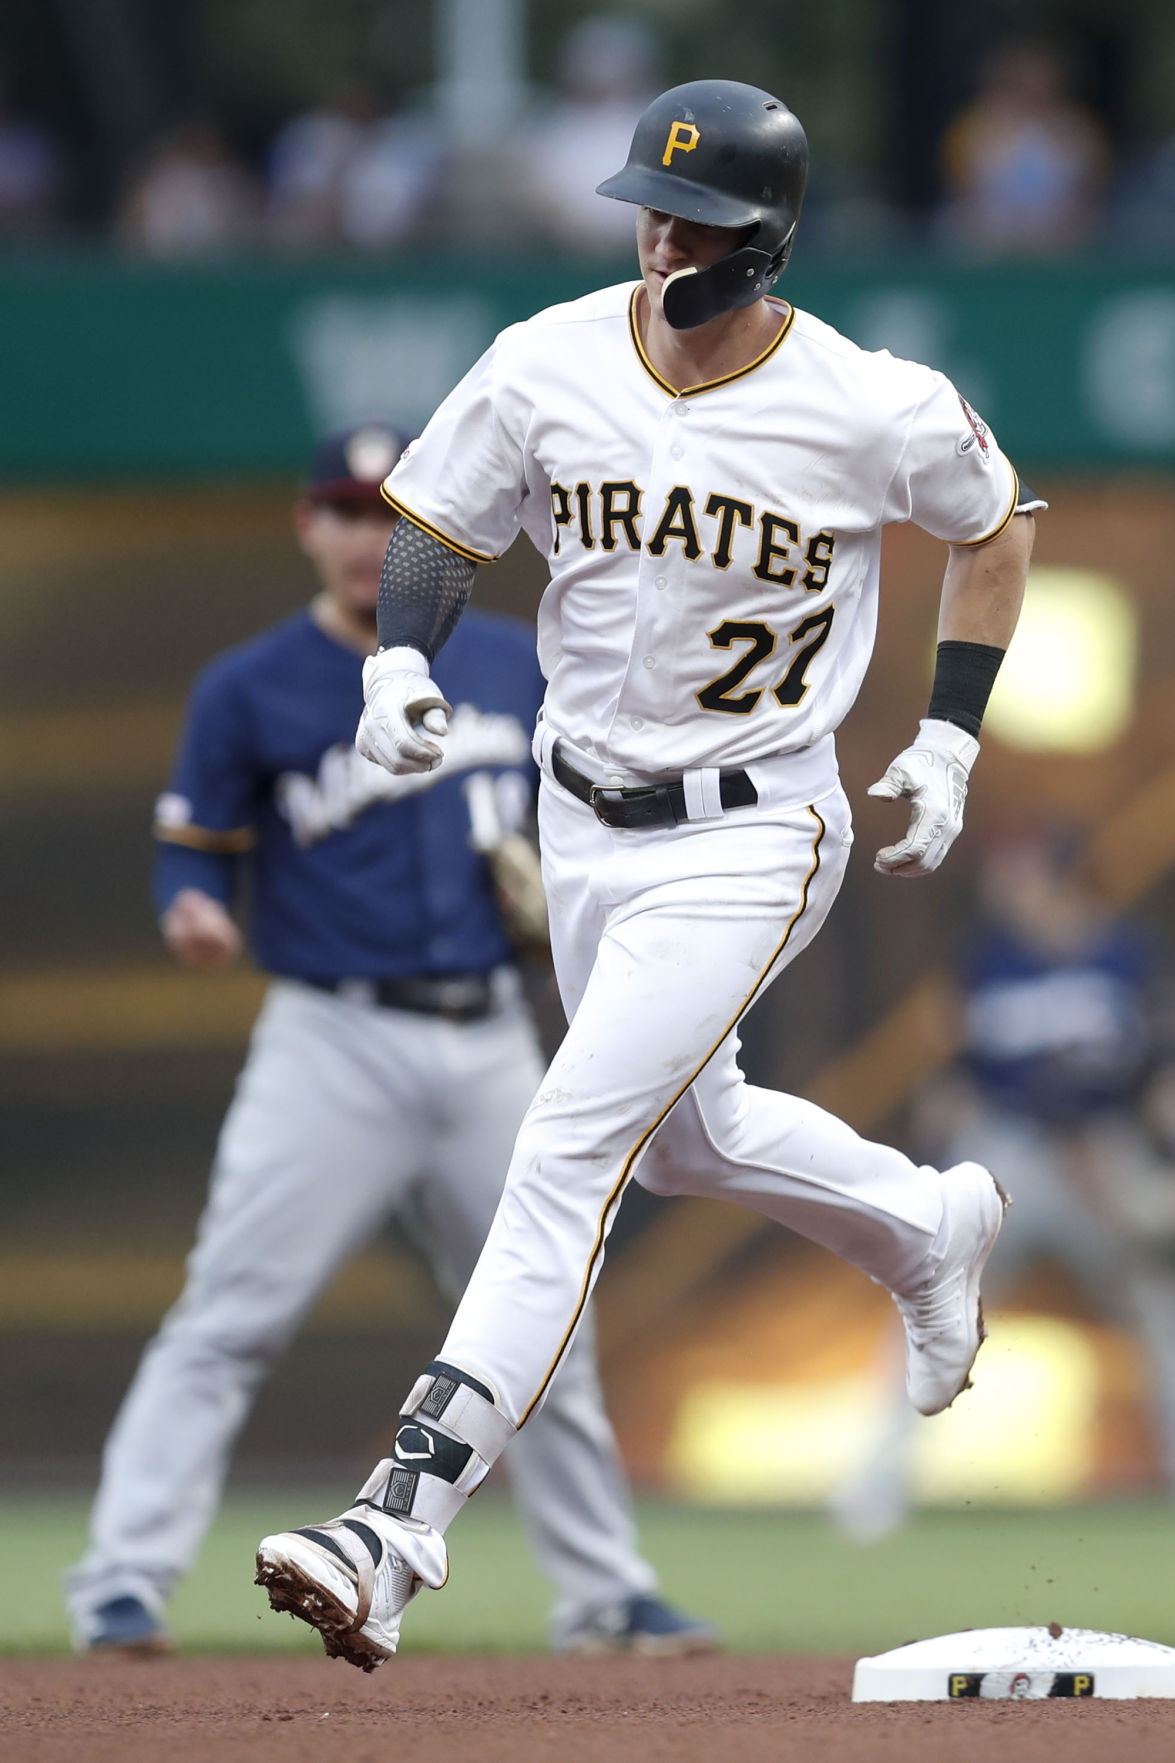 Pirates' offense stays hot in 12-2 drubbing of Milwaukee